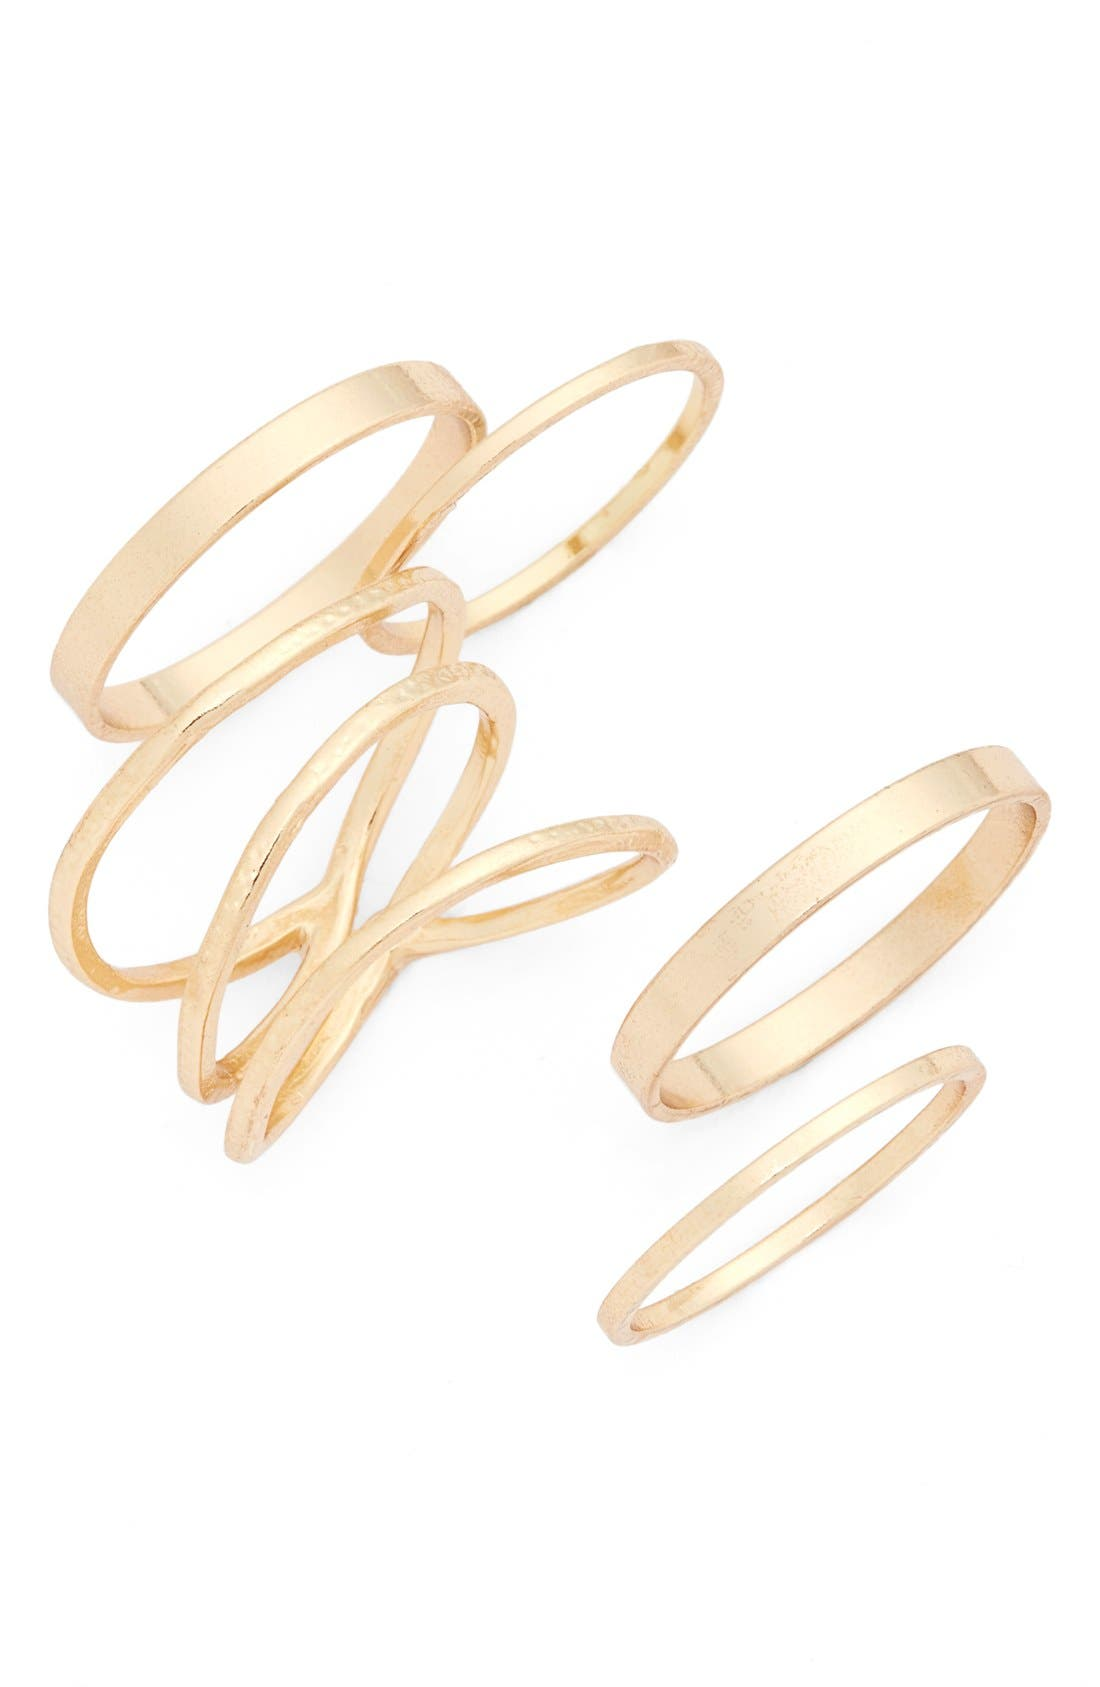 Alternate Image 1 Selected - BP. Stackable Rings (Set of 5)